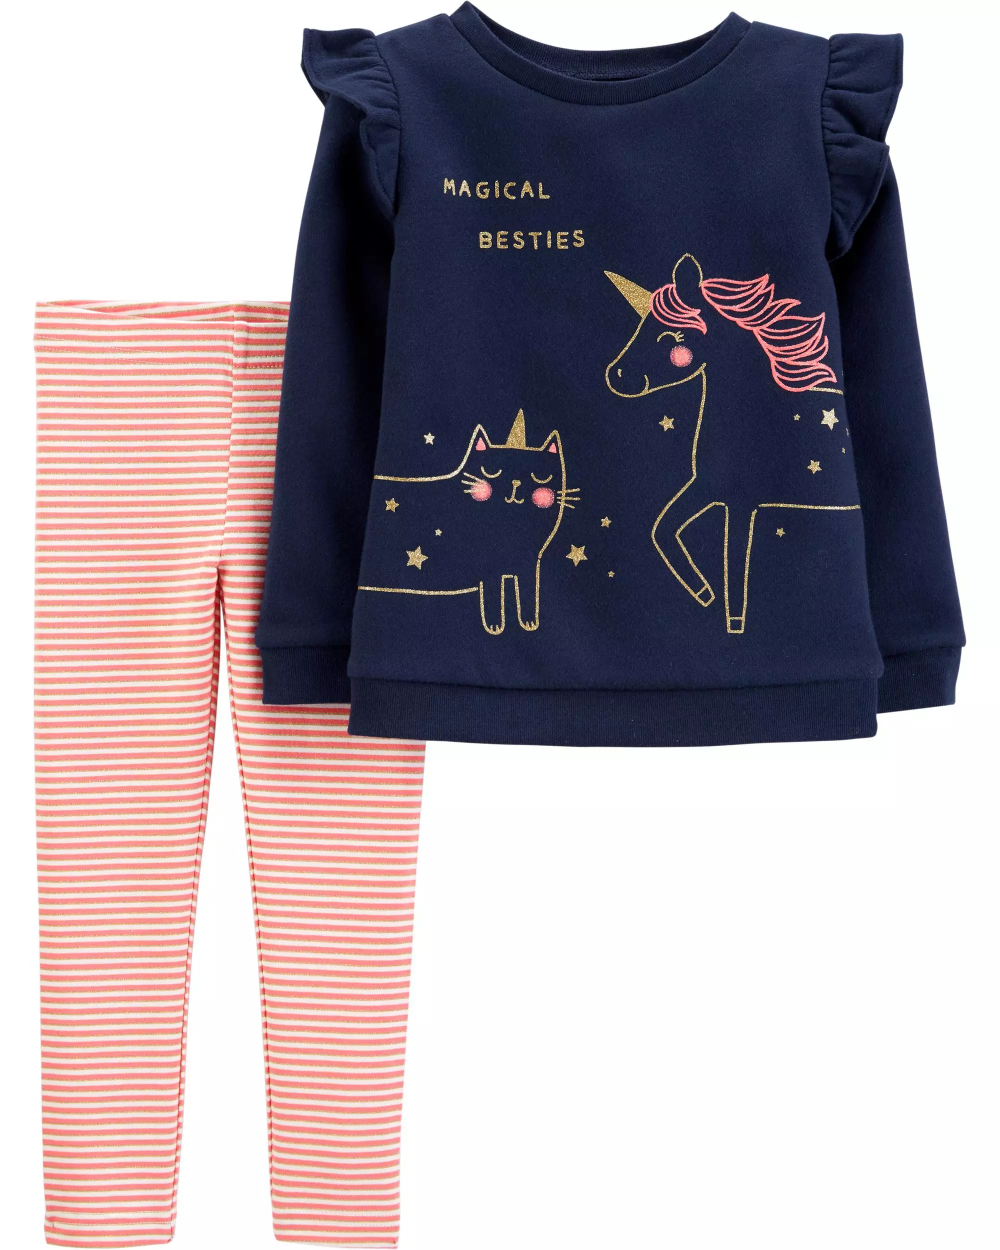 2-Piece Unicorn Fleece Top & Striped Legging Set #stripedleggings